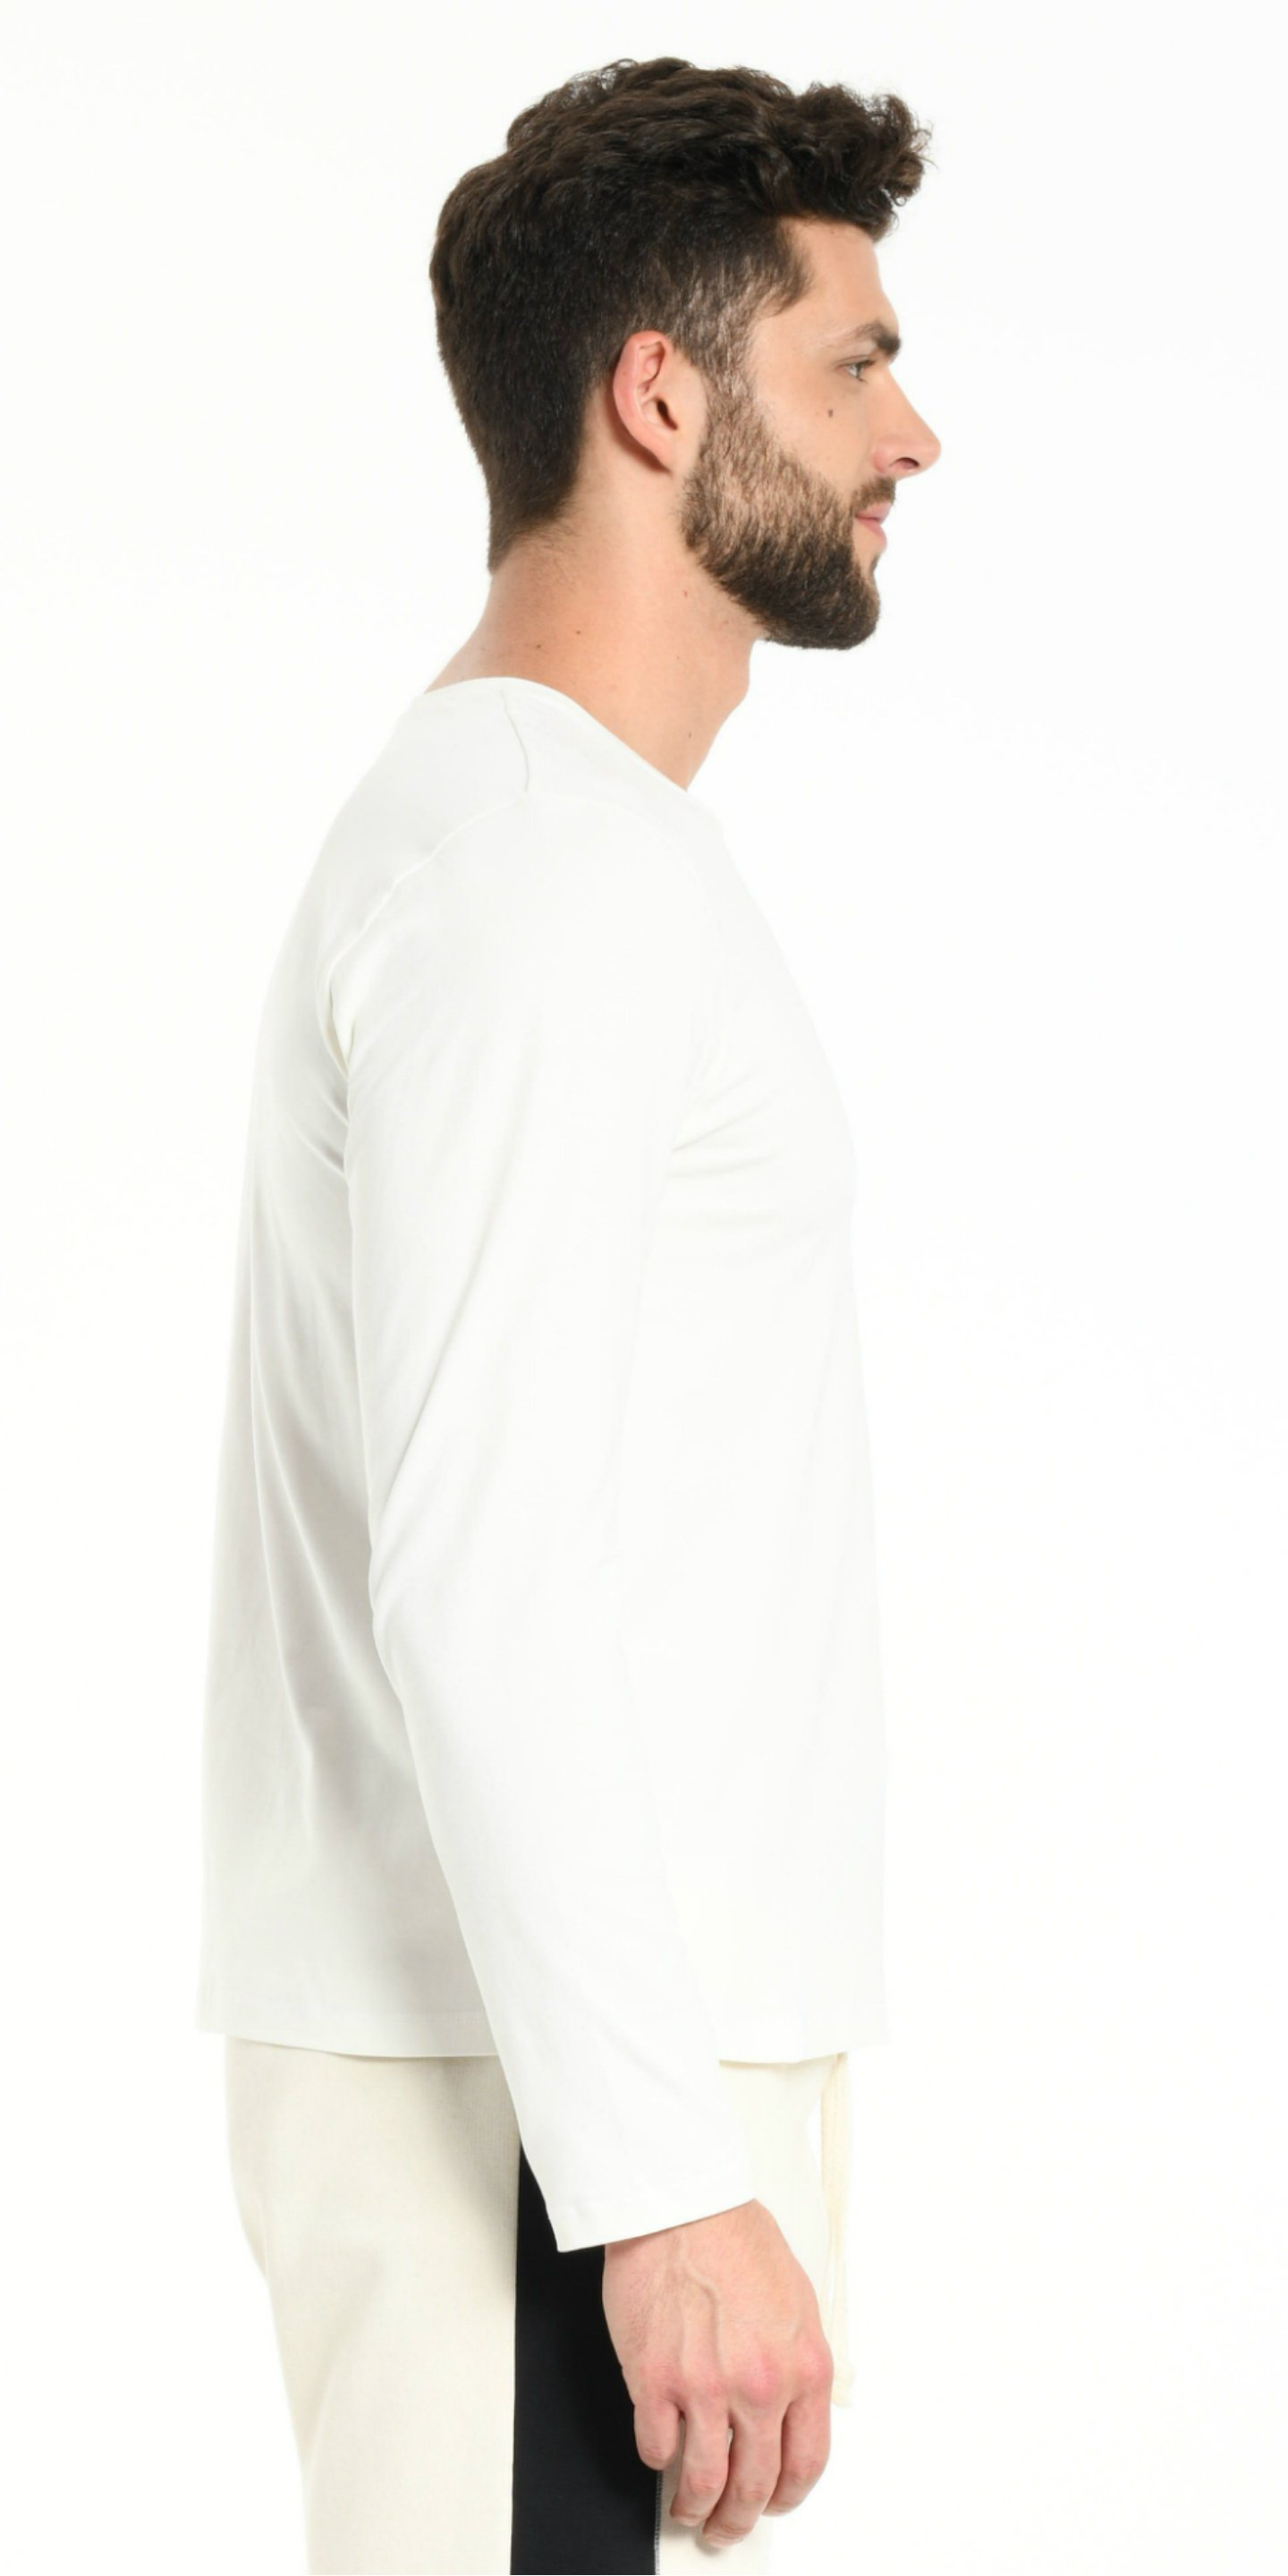 TEE SHIRT LONG SLEEVES OFFWHITE WITH BLACK STRIPS from BEARD & FRINGE